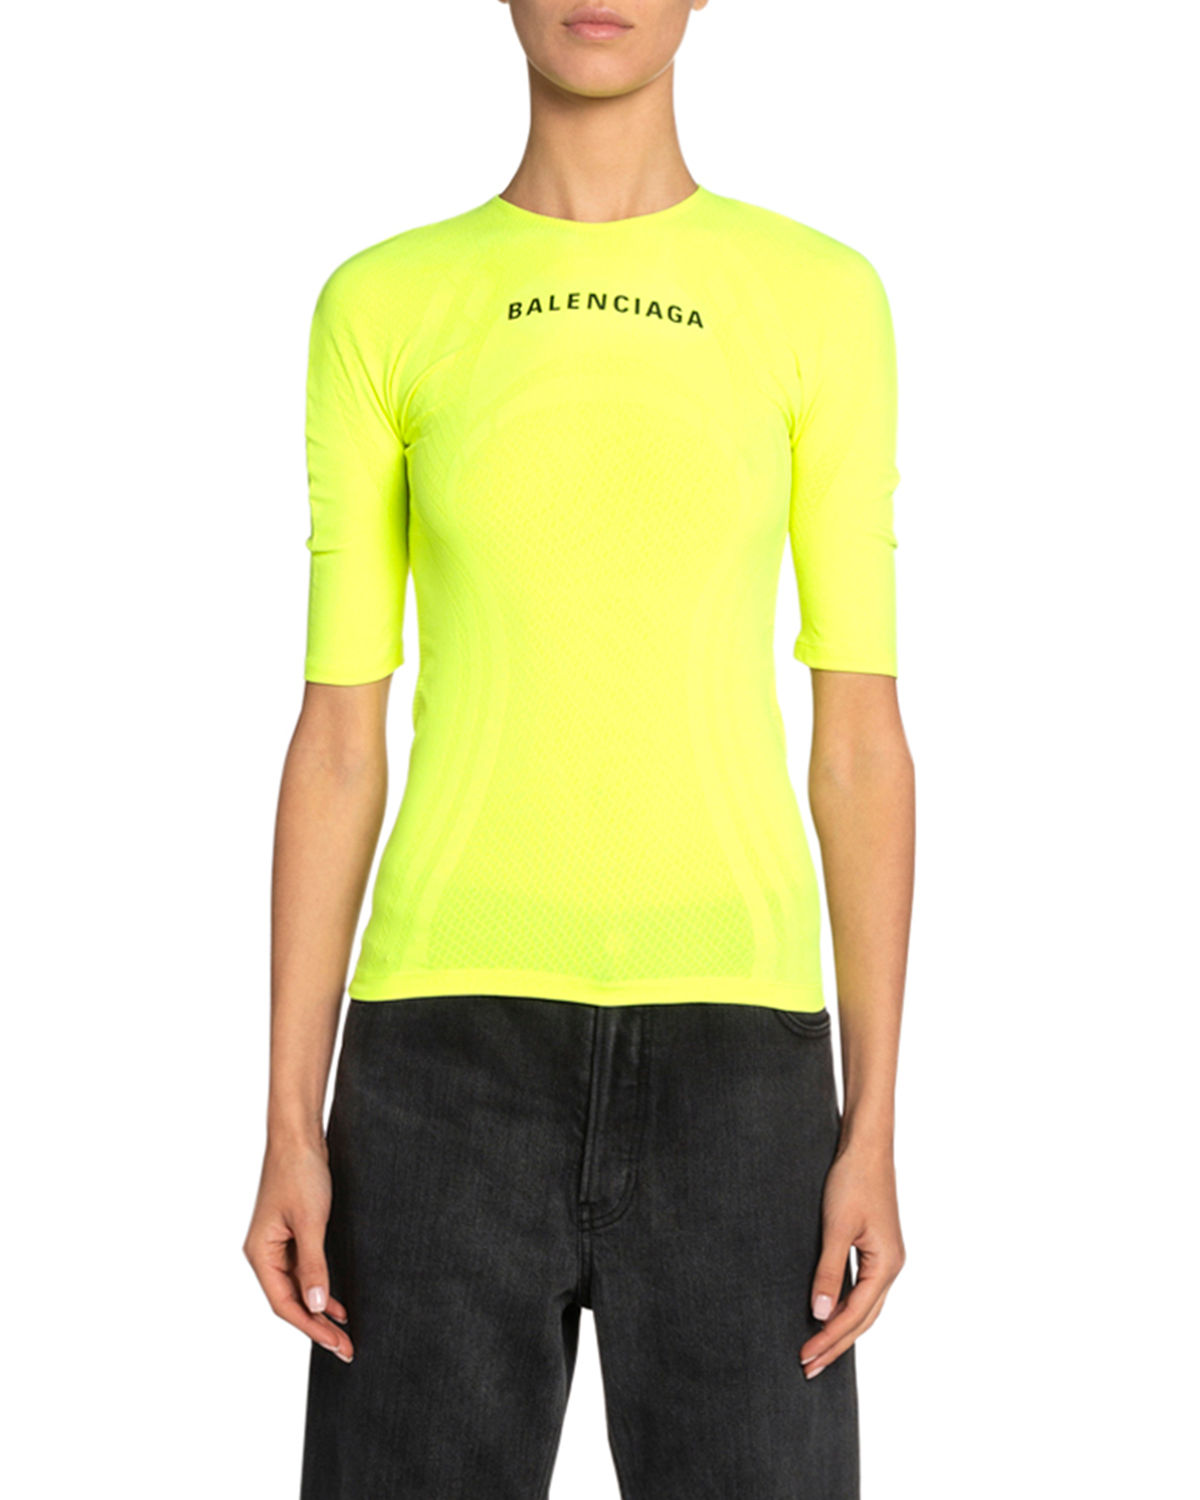 Balenciaga Athletic Jersey Top